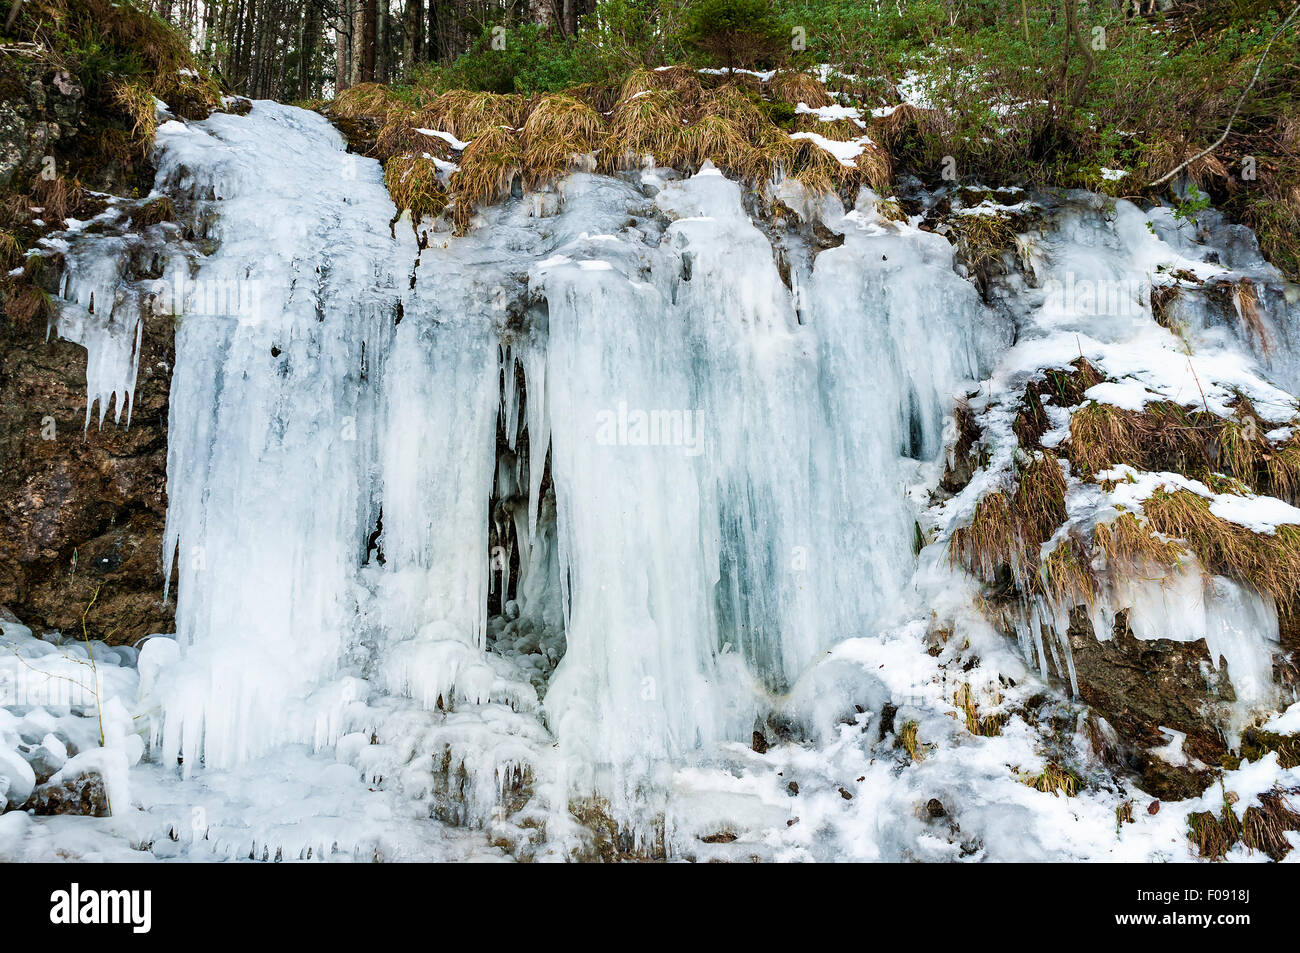 Frozen waterfall at lake Weissensee in Bavaria, Germany in winter - Stock Image